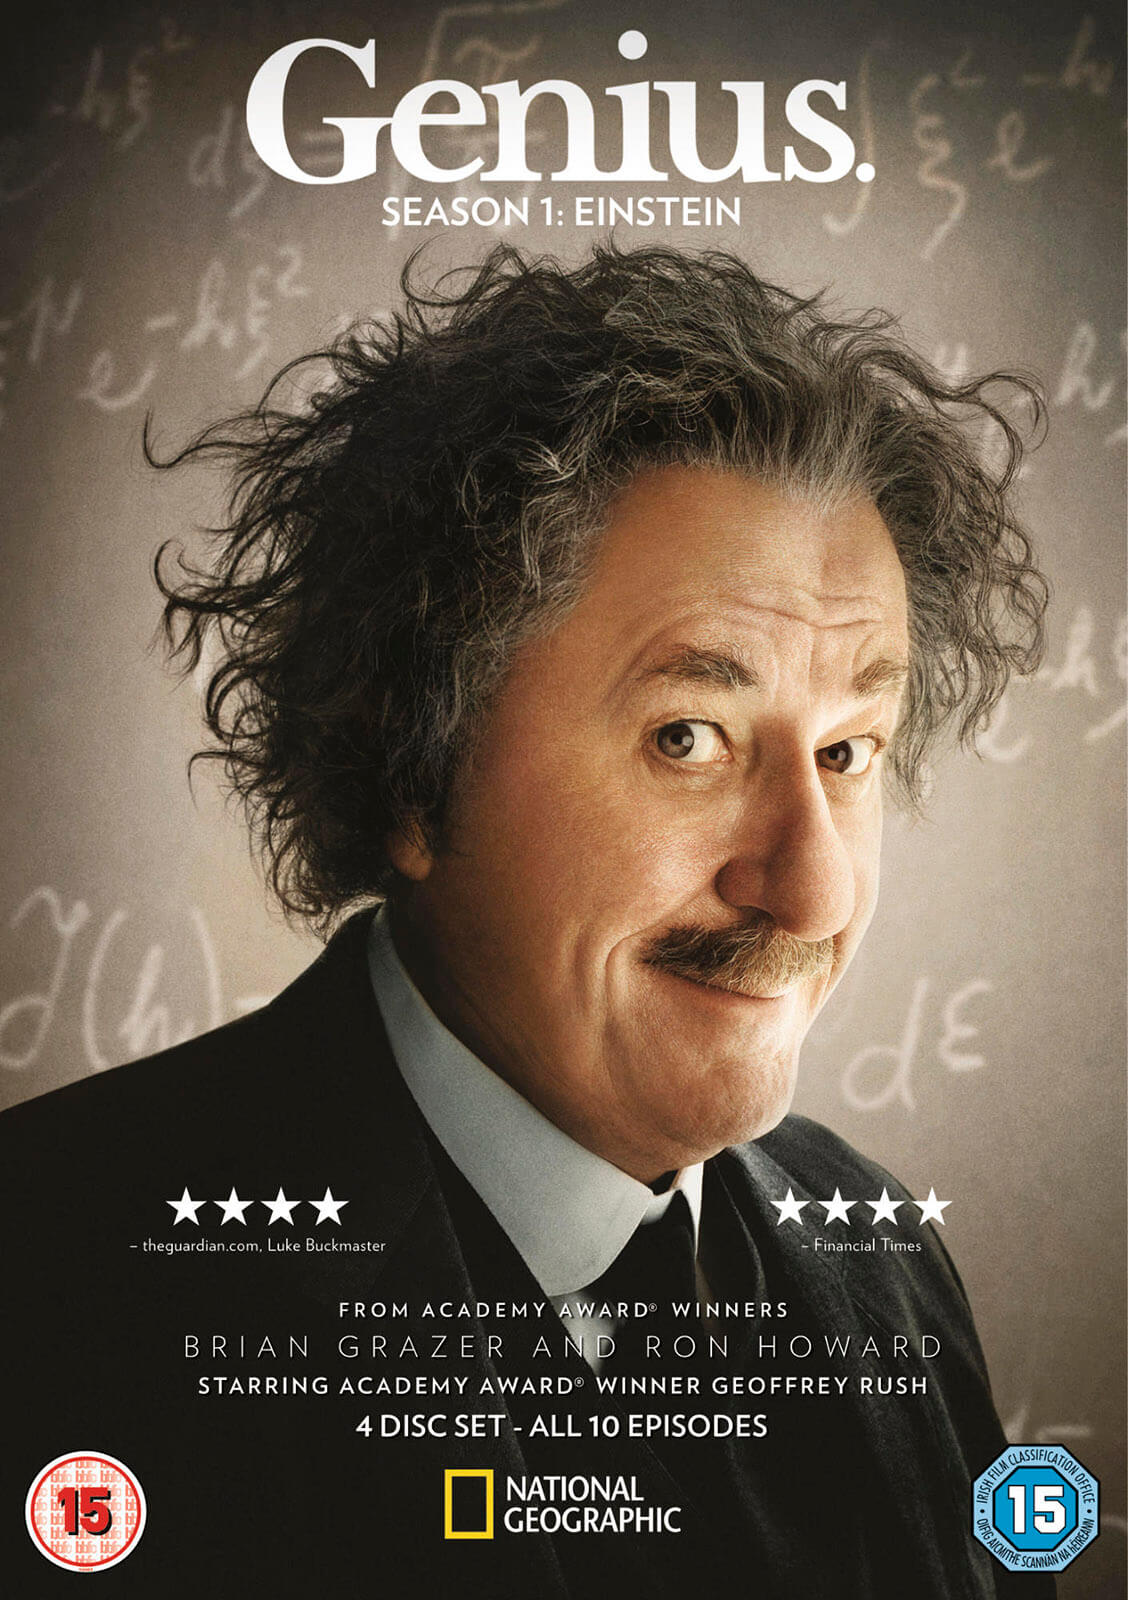 Genius Season 1: Einstein